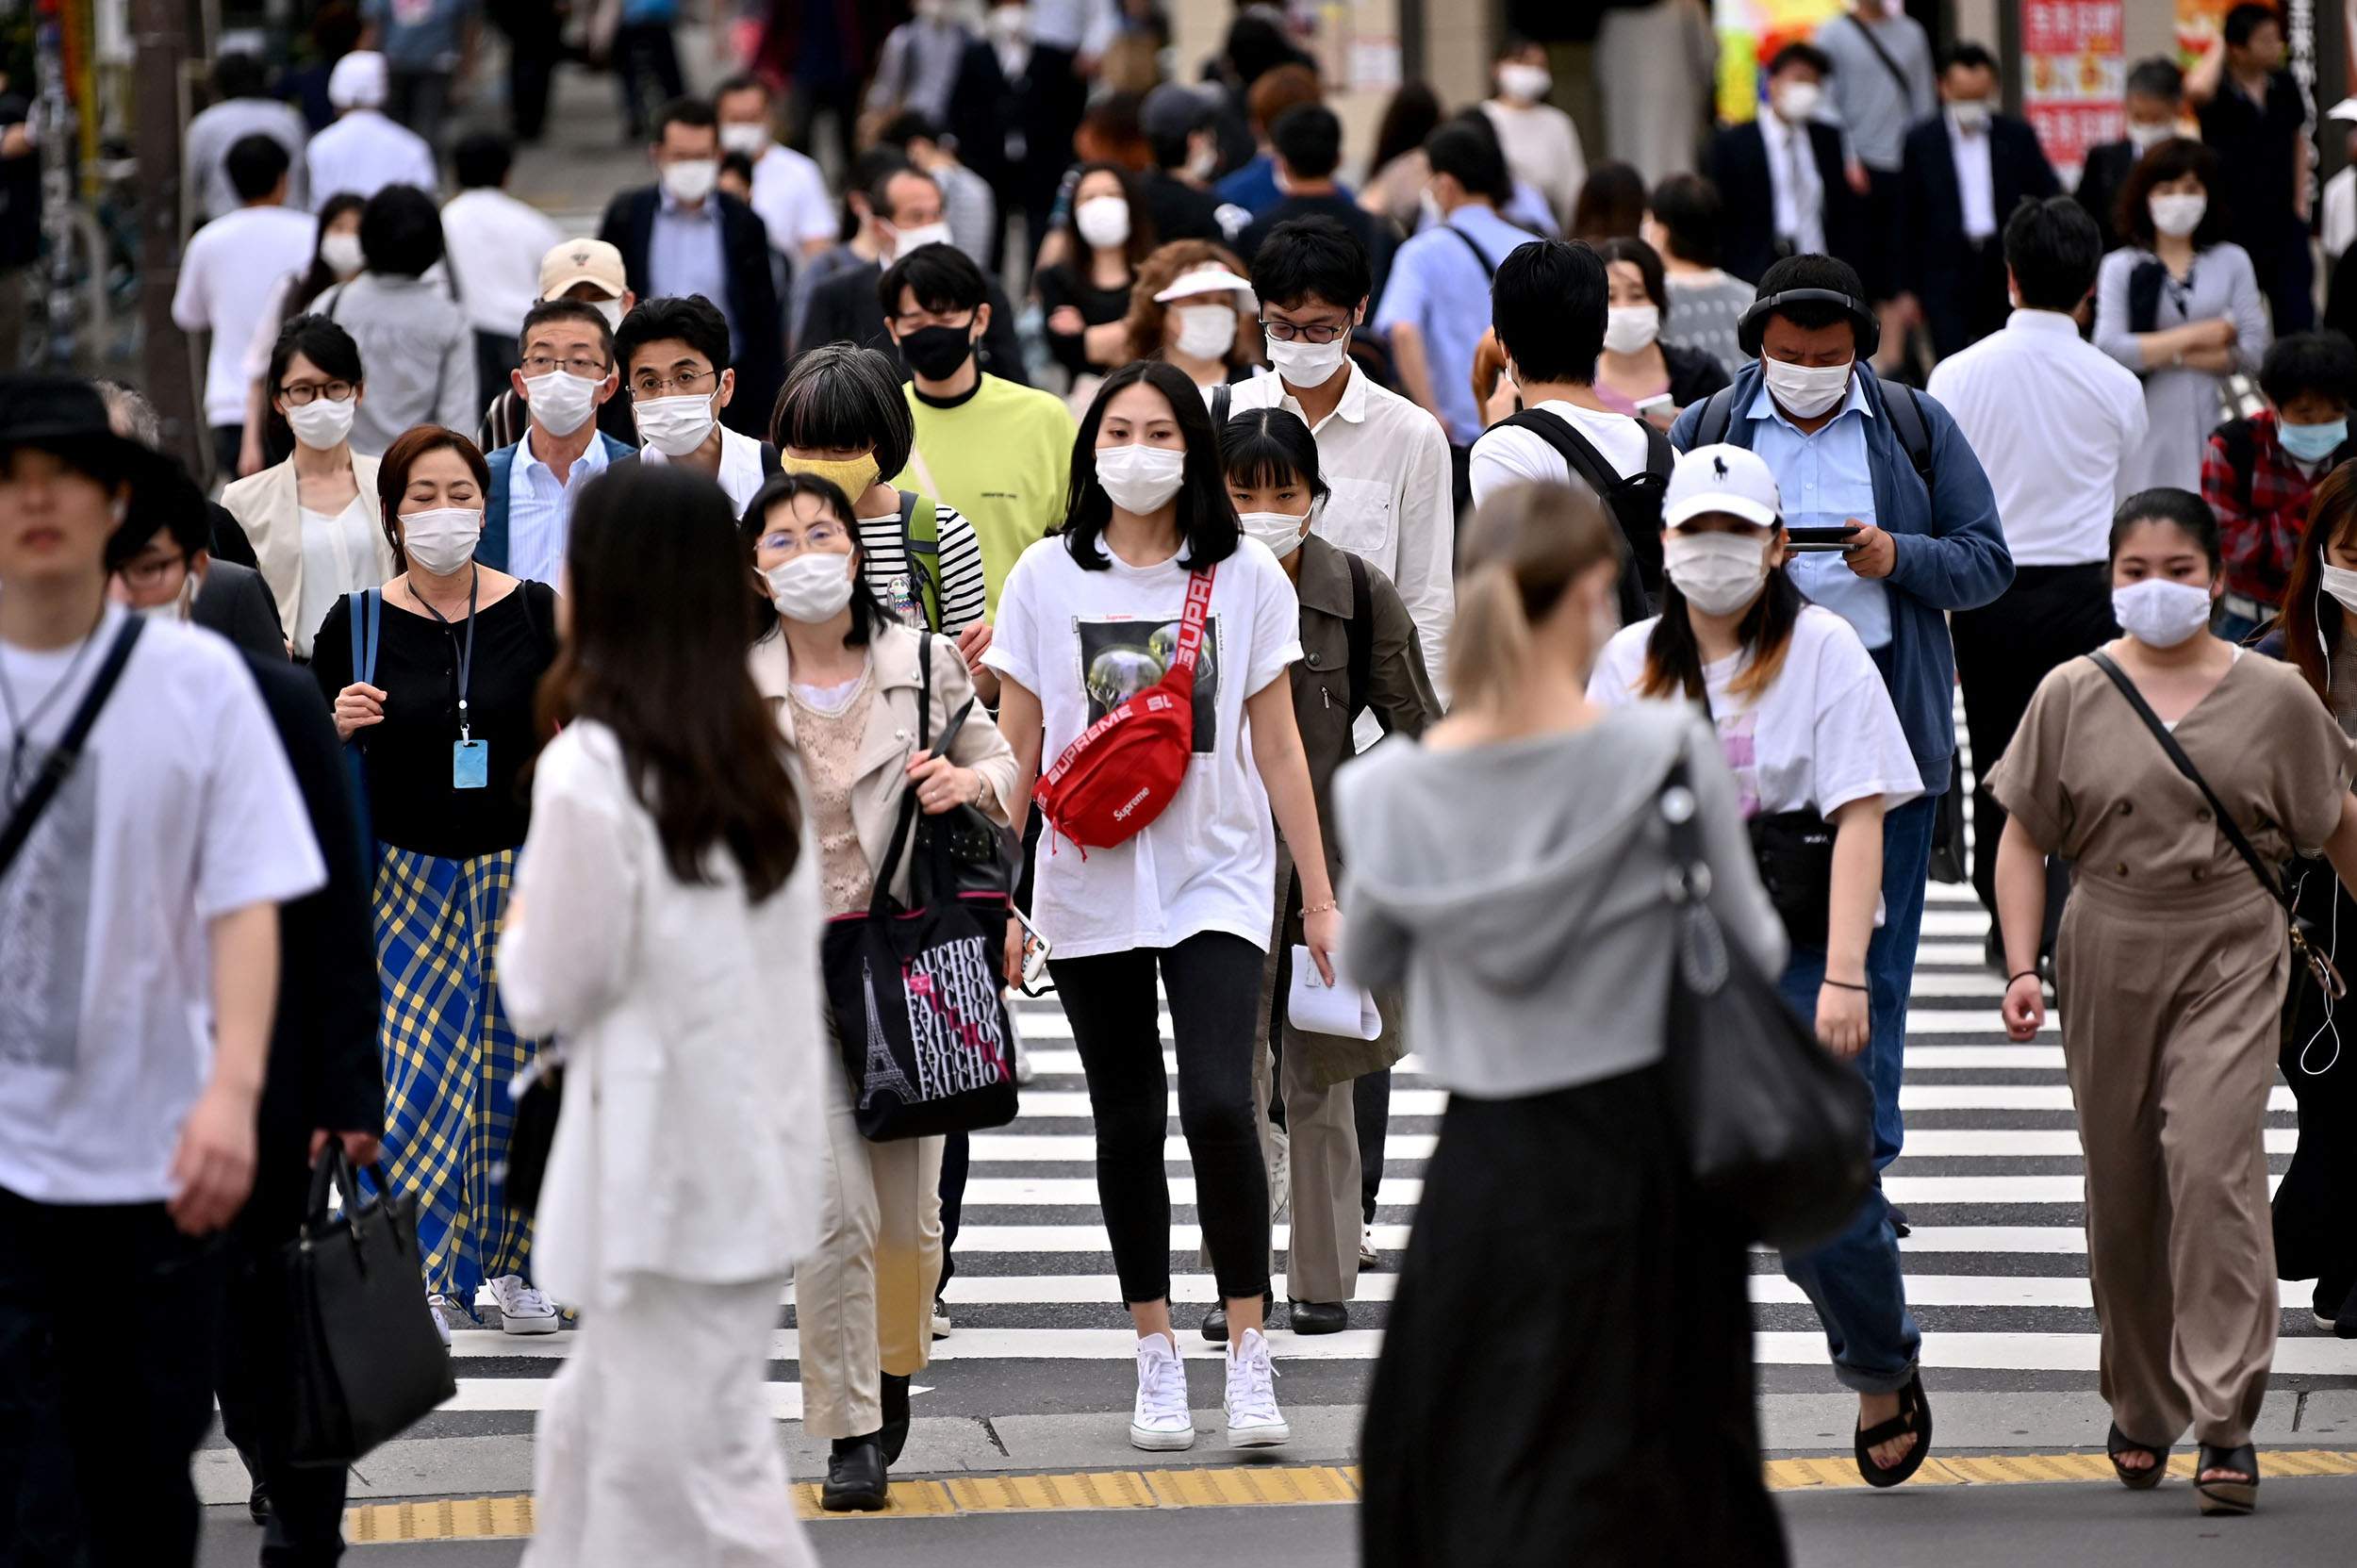 People wearing face masks cross a street on May 25, in Tokyo, Japan.